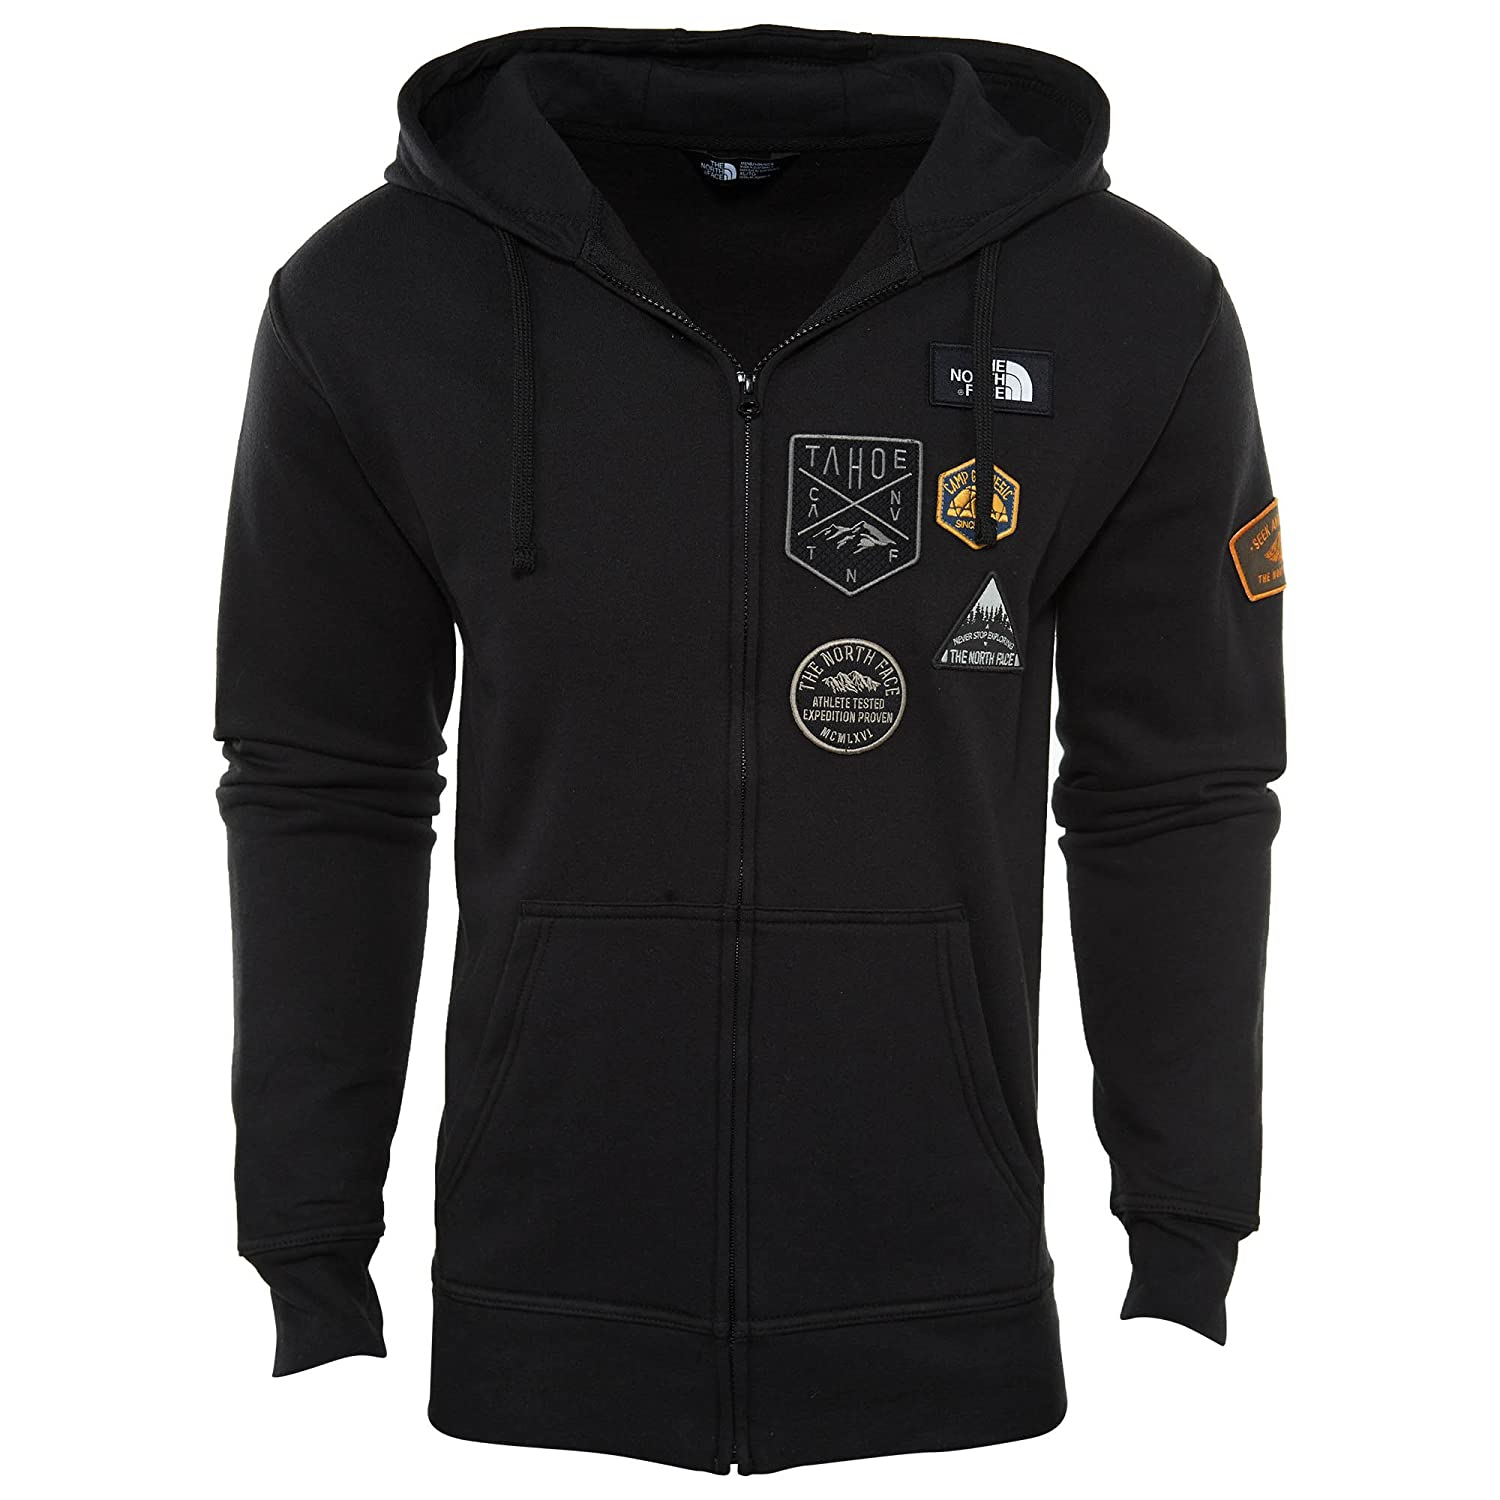 THE NORTH FACE LFC Patches Full Zip Hoodie Mens Style  A3589-JK3 Size  XL   Amazon.ca  Sports   Outdoors a159d87fb